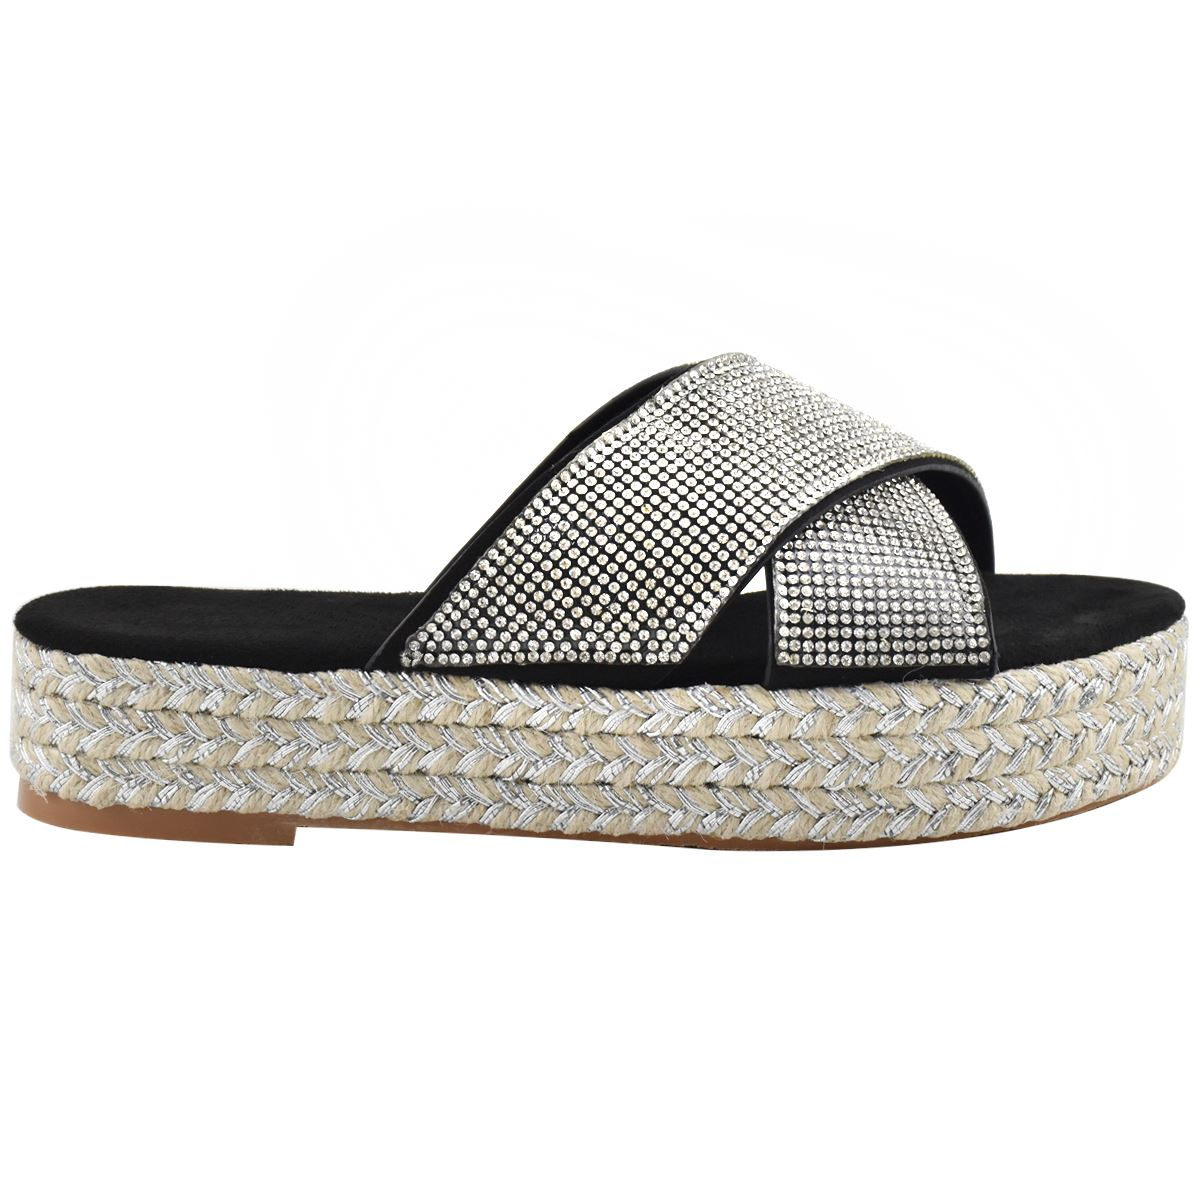 Womens-Diamante-Slip-On-Sandals-Flatforms-Sparkly-Platform-Summer-Size-UK thumbnail 4